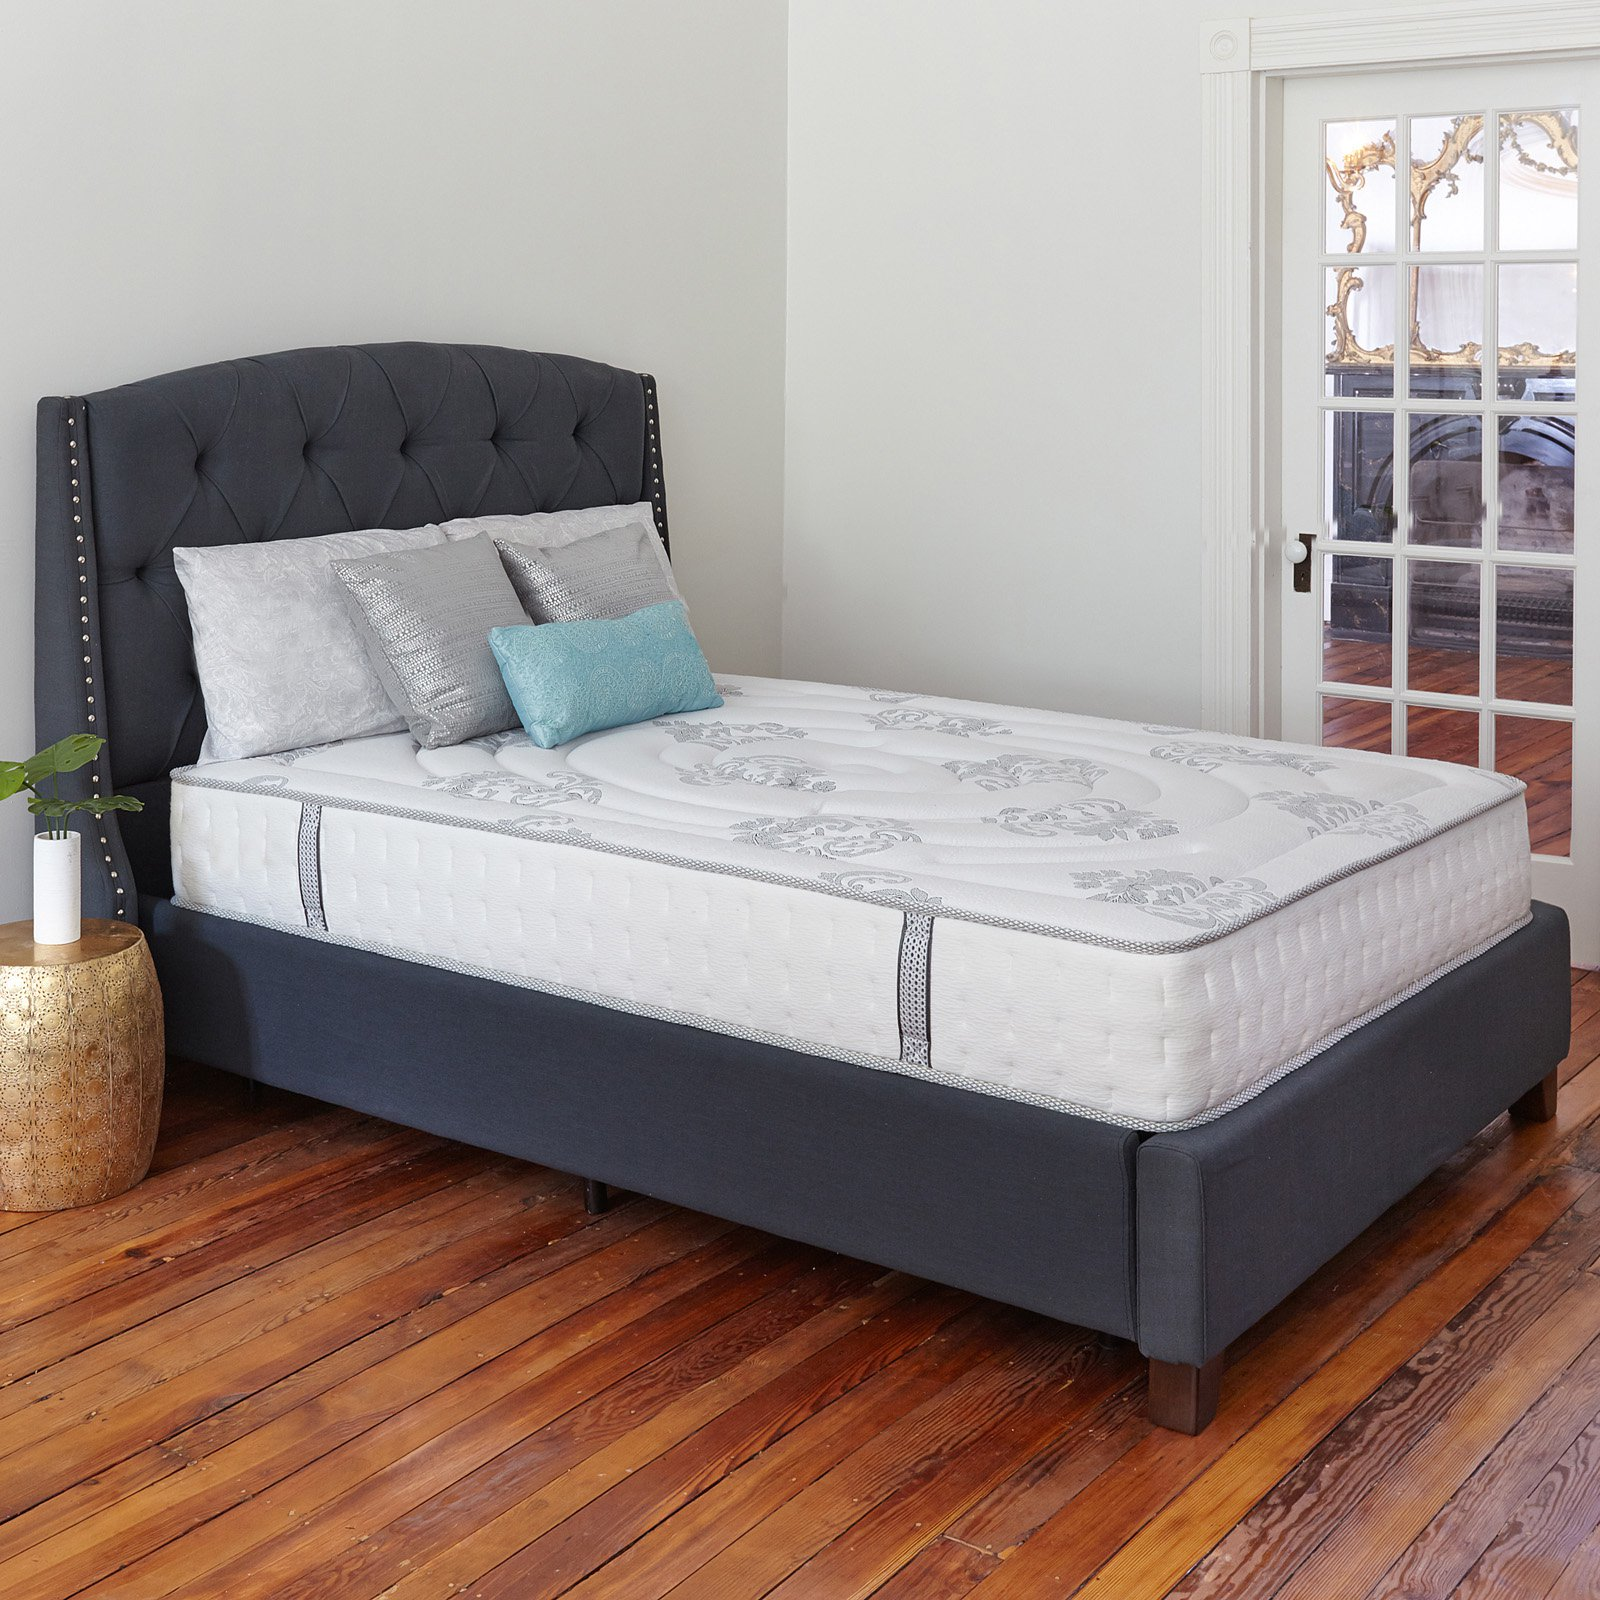 Classic Brands Decker 10.5 in. Firm Hybrid Memory Foam and Innerspring Mattress by Classic Brands